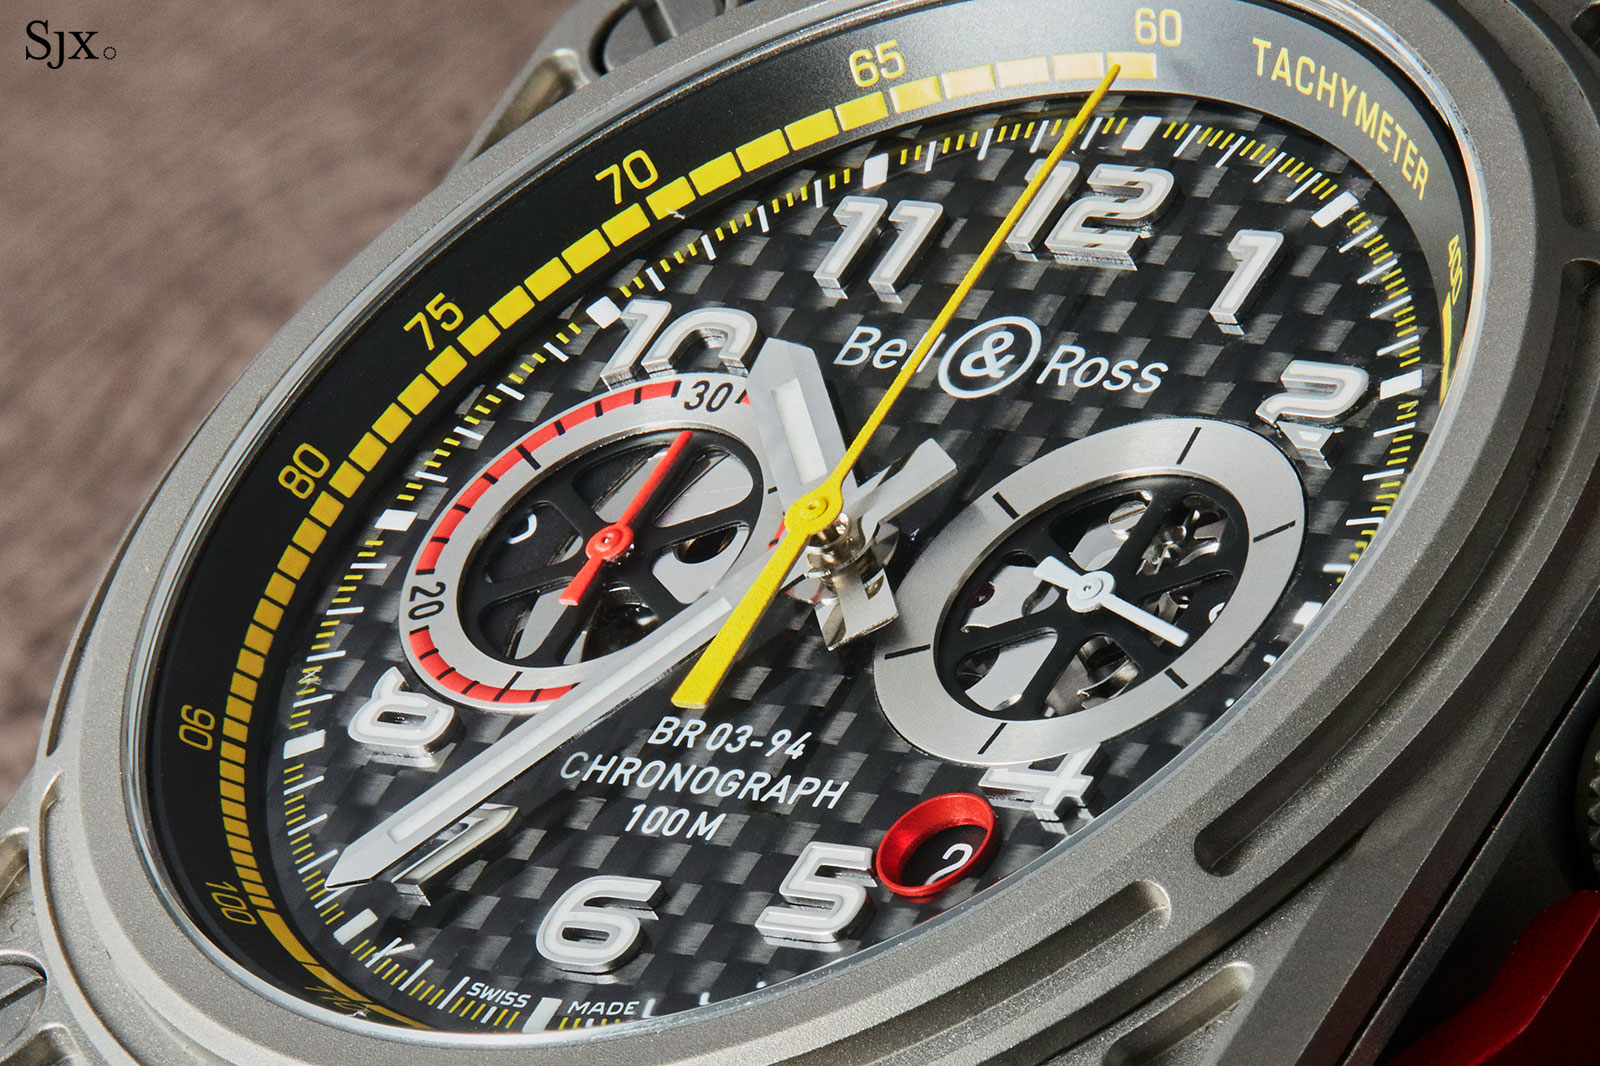 bell ross br03 94 rs18 chronograph 3